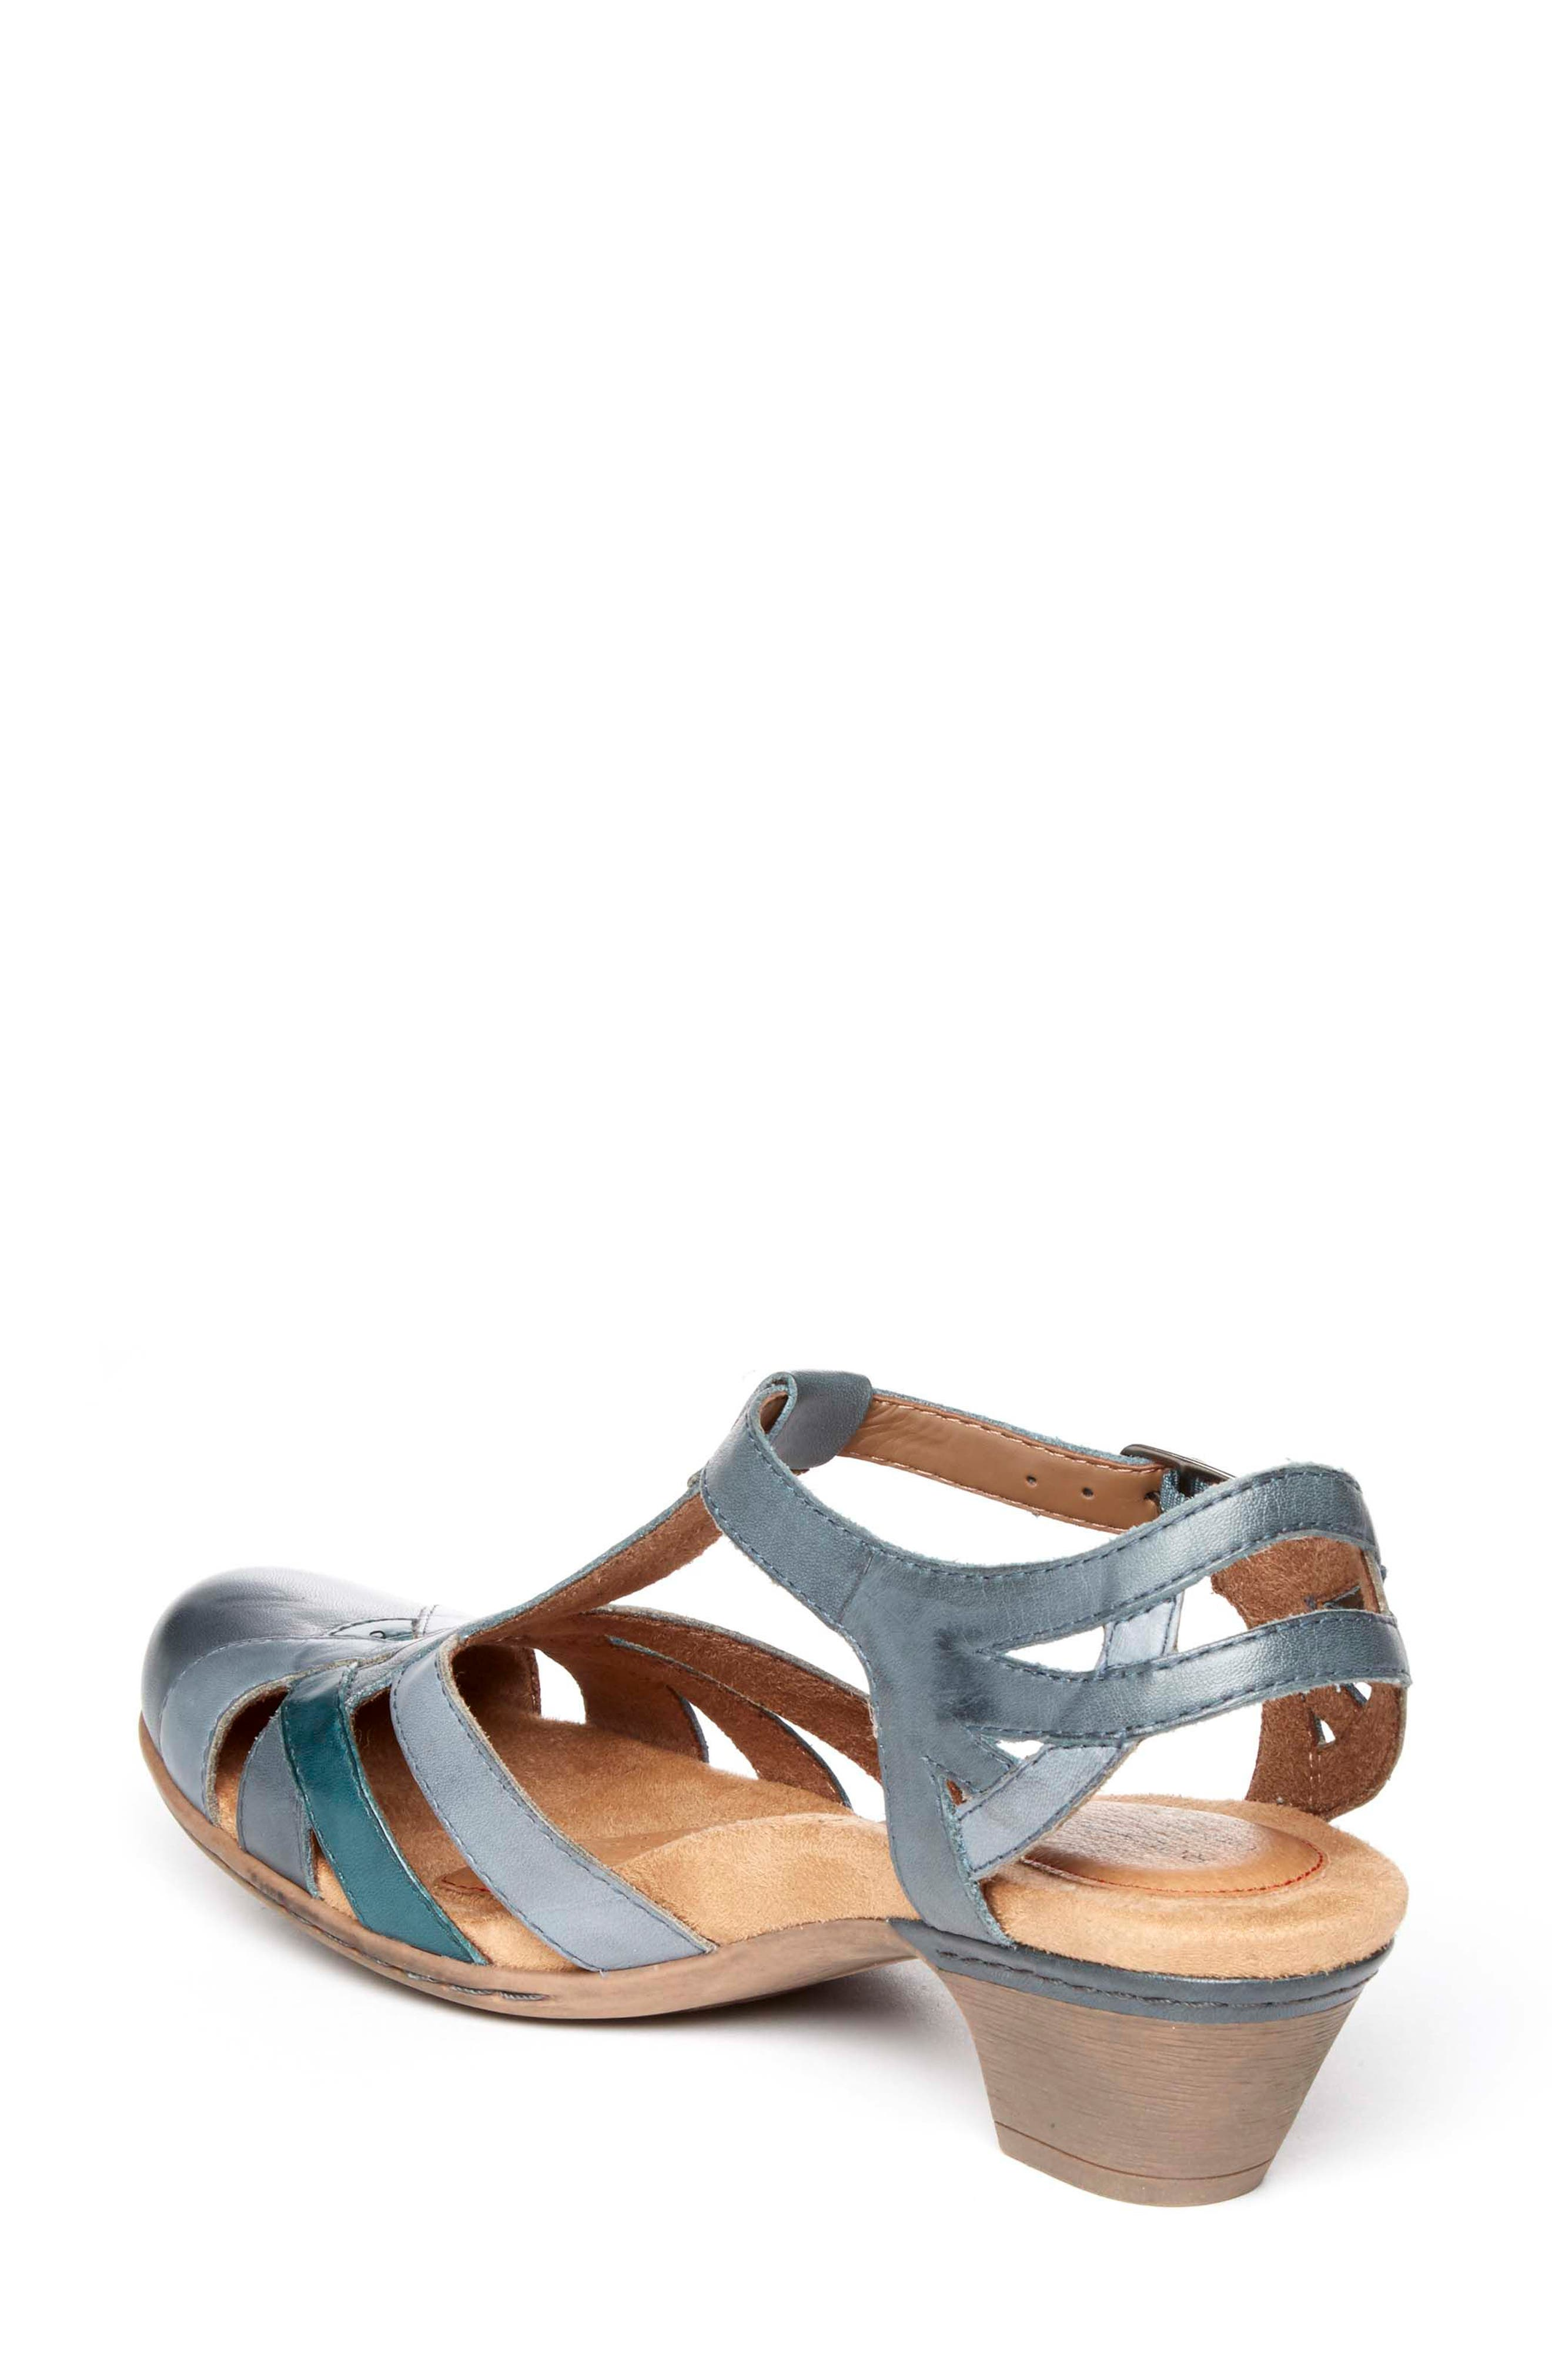 'Aubrey' Sandal,                             Alternate thumbnail 18, color,